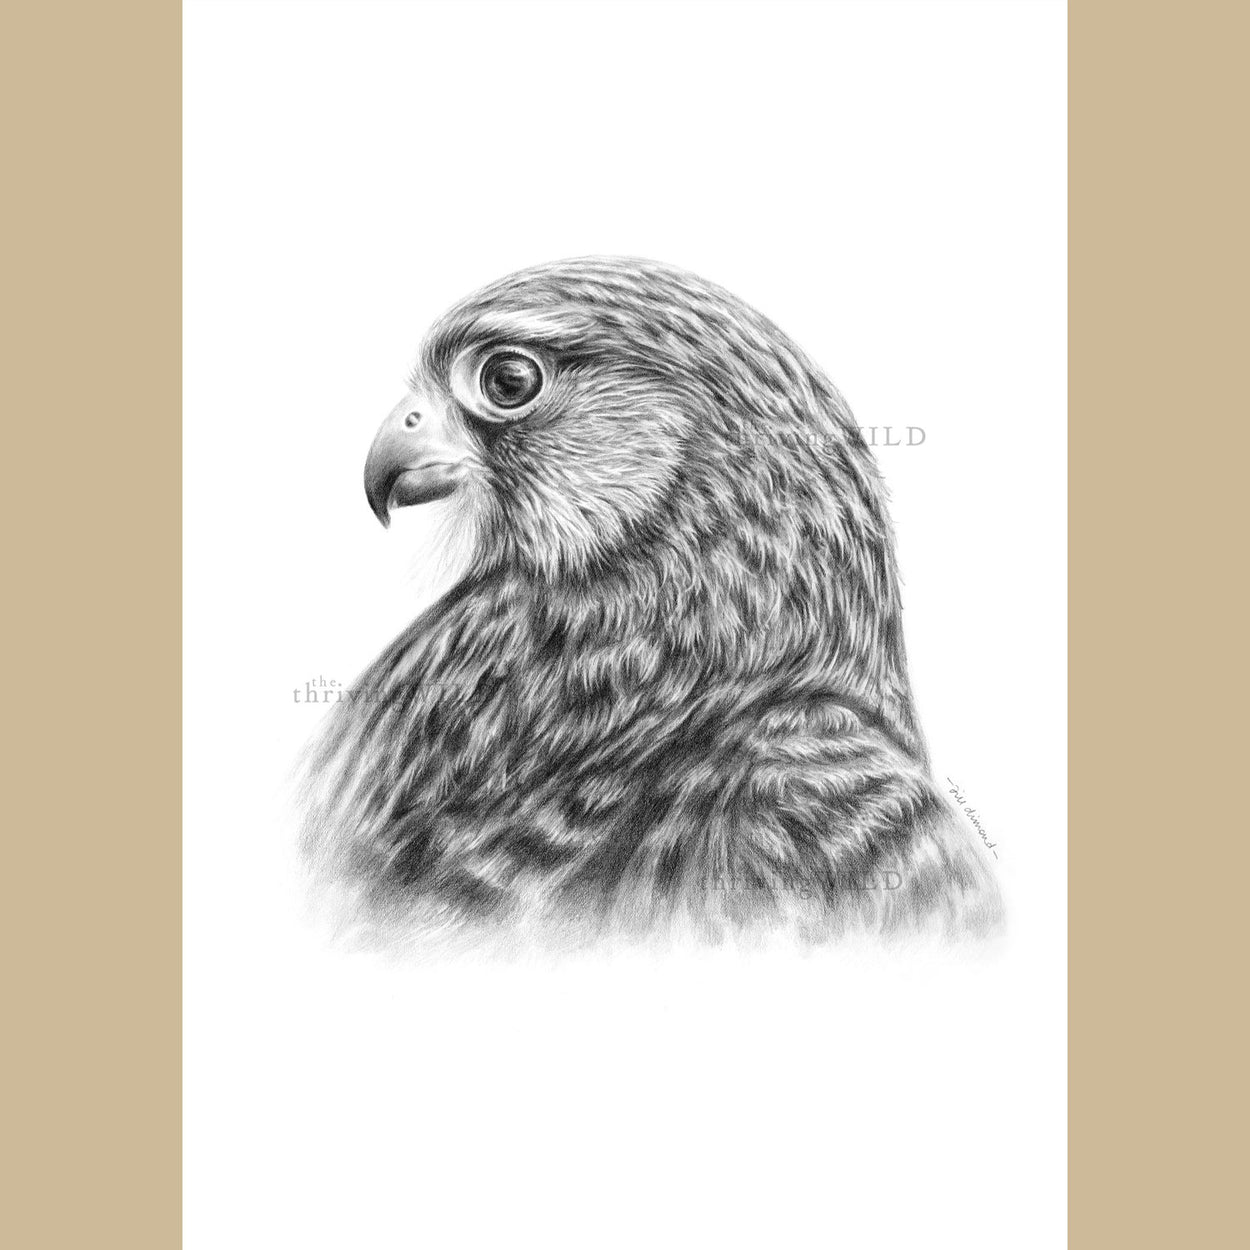 Kestrel Graphite Drawing - The Thriving Wild - Jill Dimond